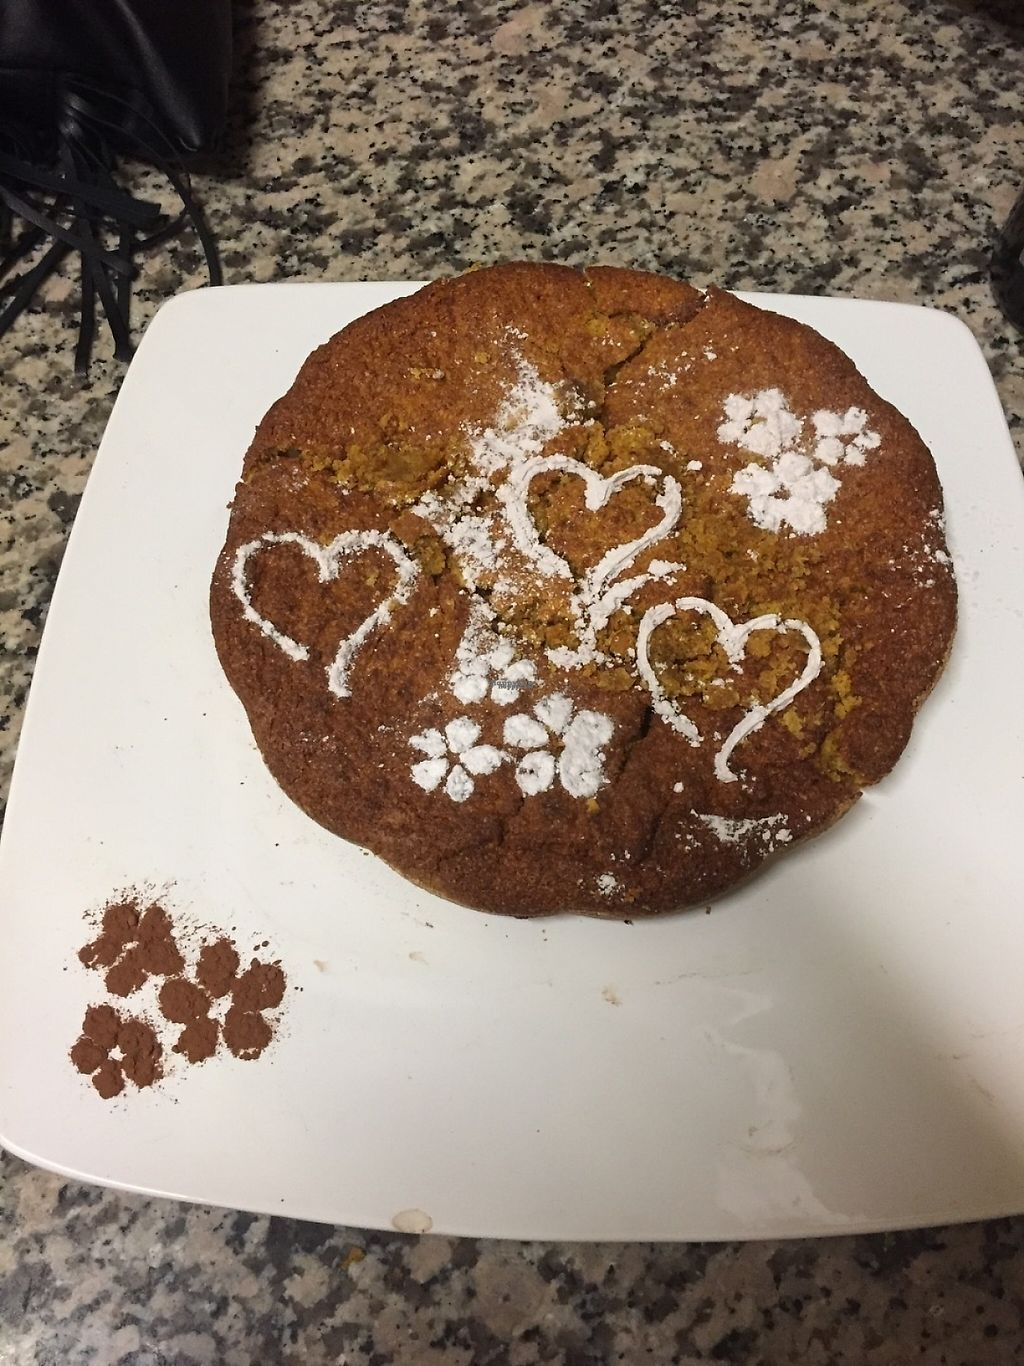 """Photo of Hotel Rovere  by <a href=""""/members/profile/ssarad"""">ssarad</a> <br/>Vegan cake (carrot, coconut and almonds)  <br/> March 24, 2017  - <a href='/contact/abuse/image/88052/240305'>Report</a>"""